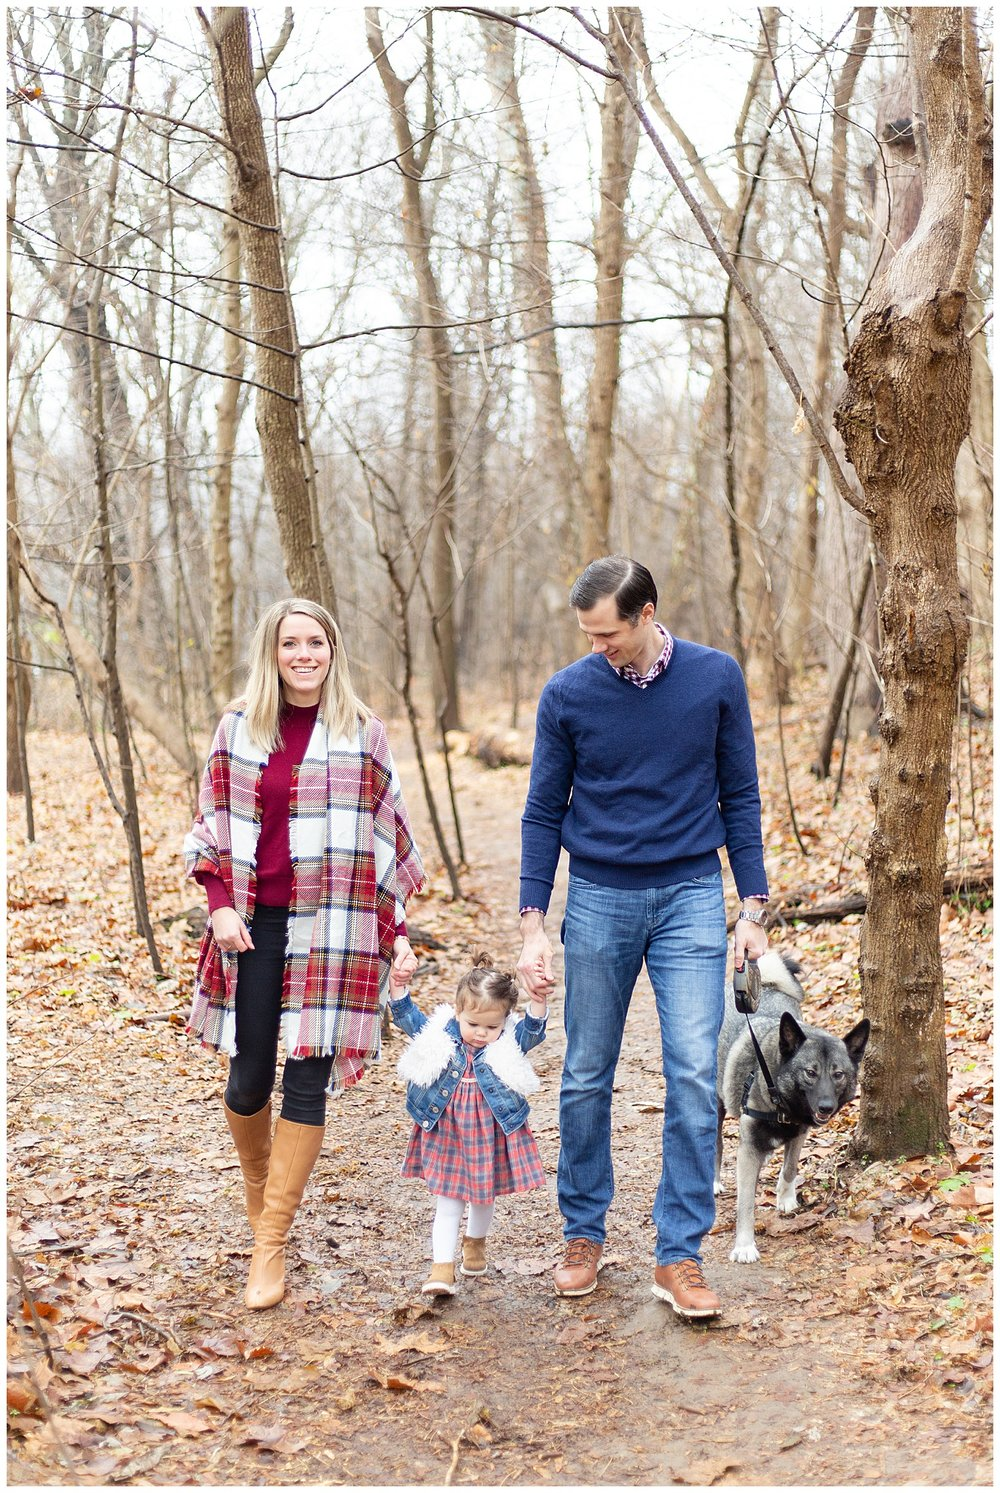 dc-fall-family-photos-emily-belson-photography-03.jpg